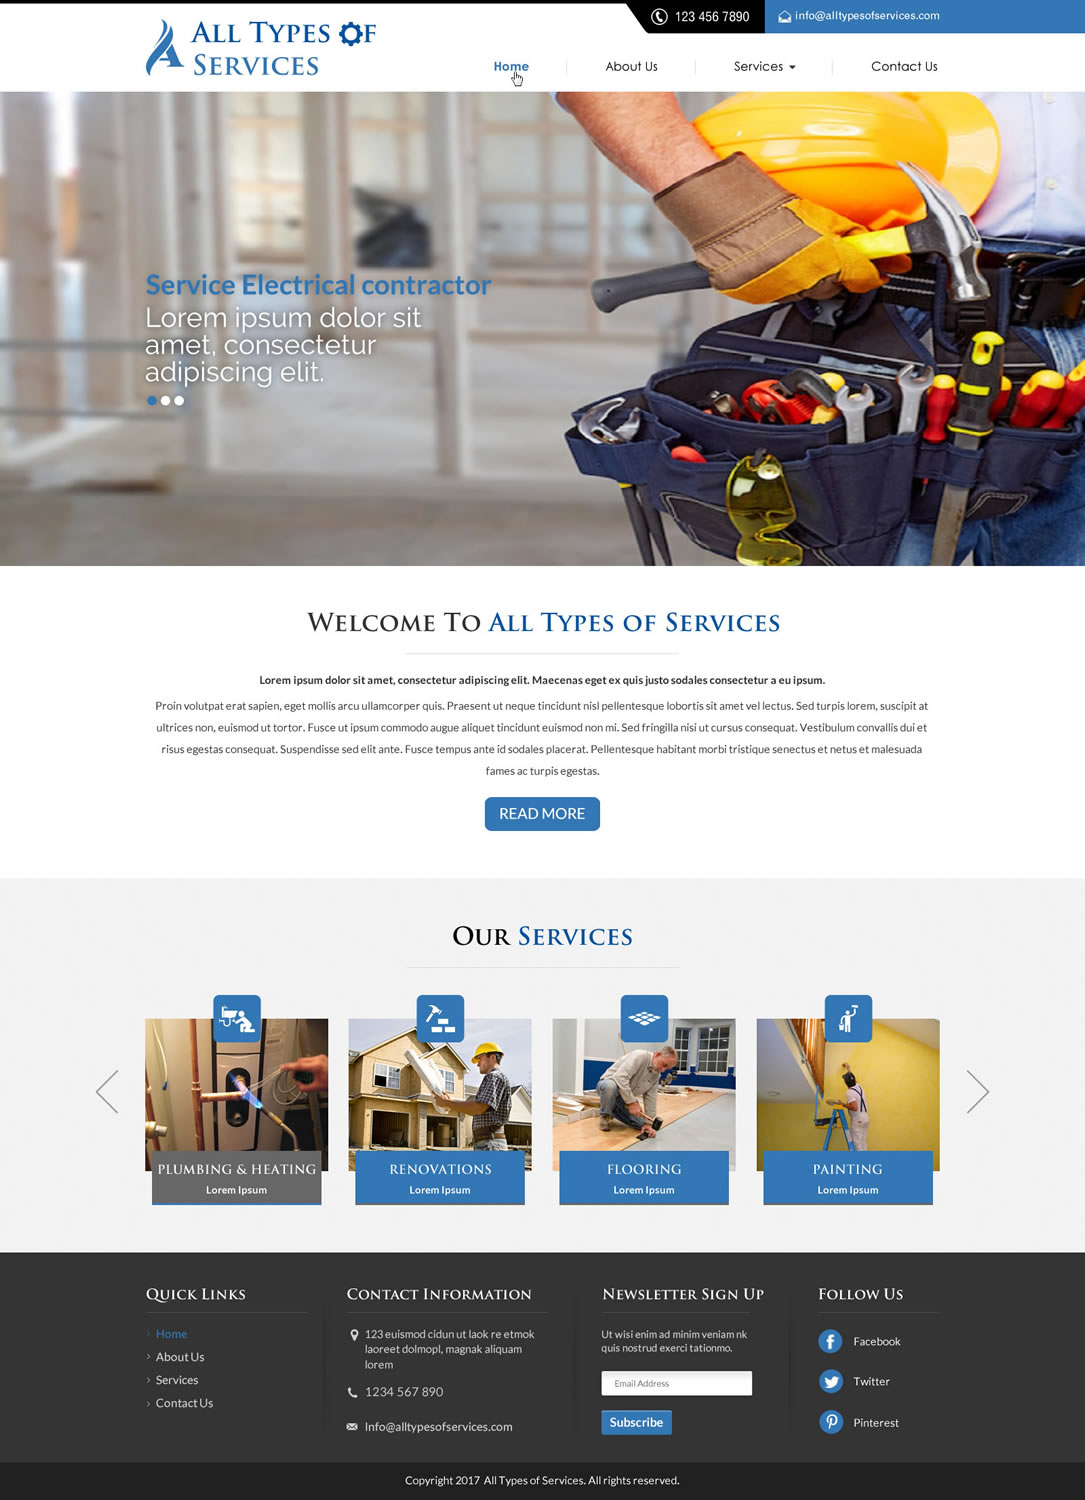 Bold, Serious, Contractor Web Design for a Company by Sbss